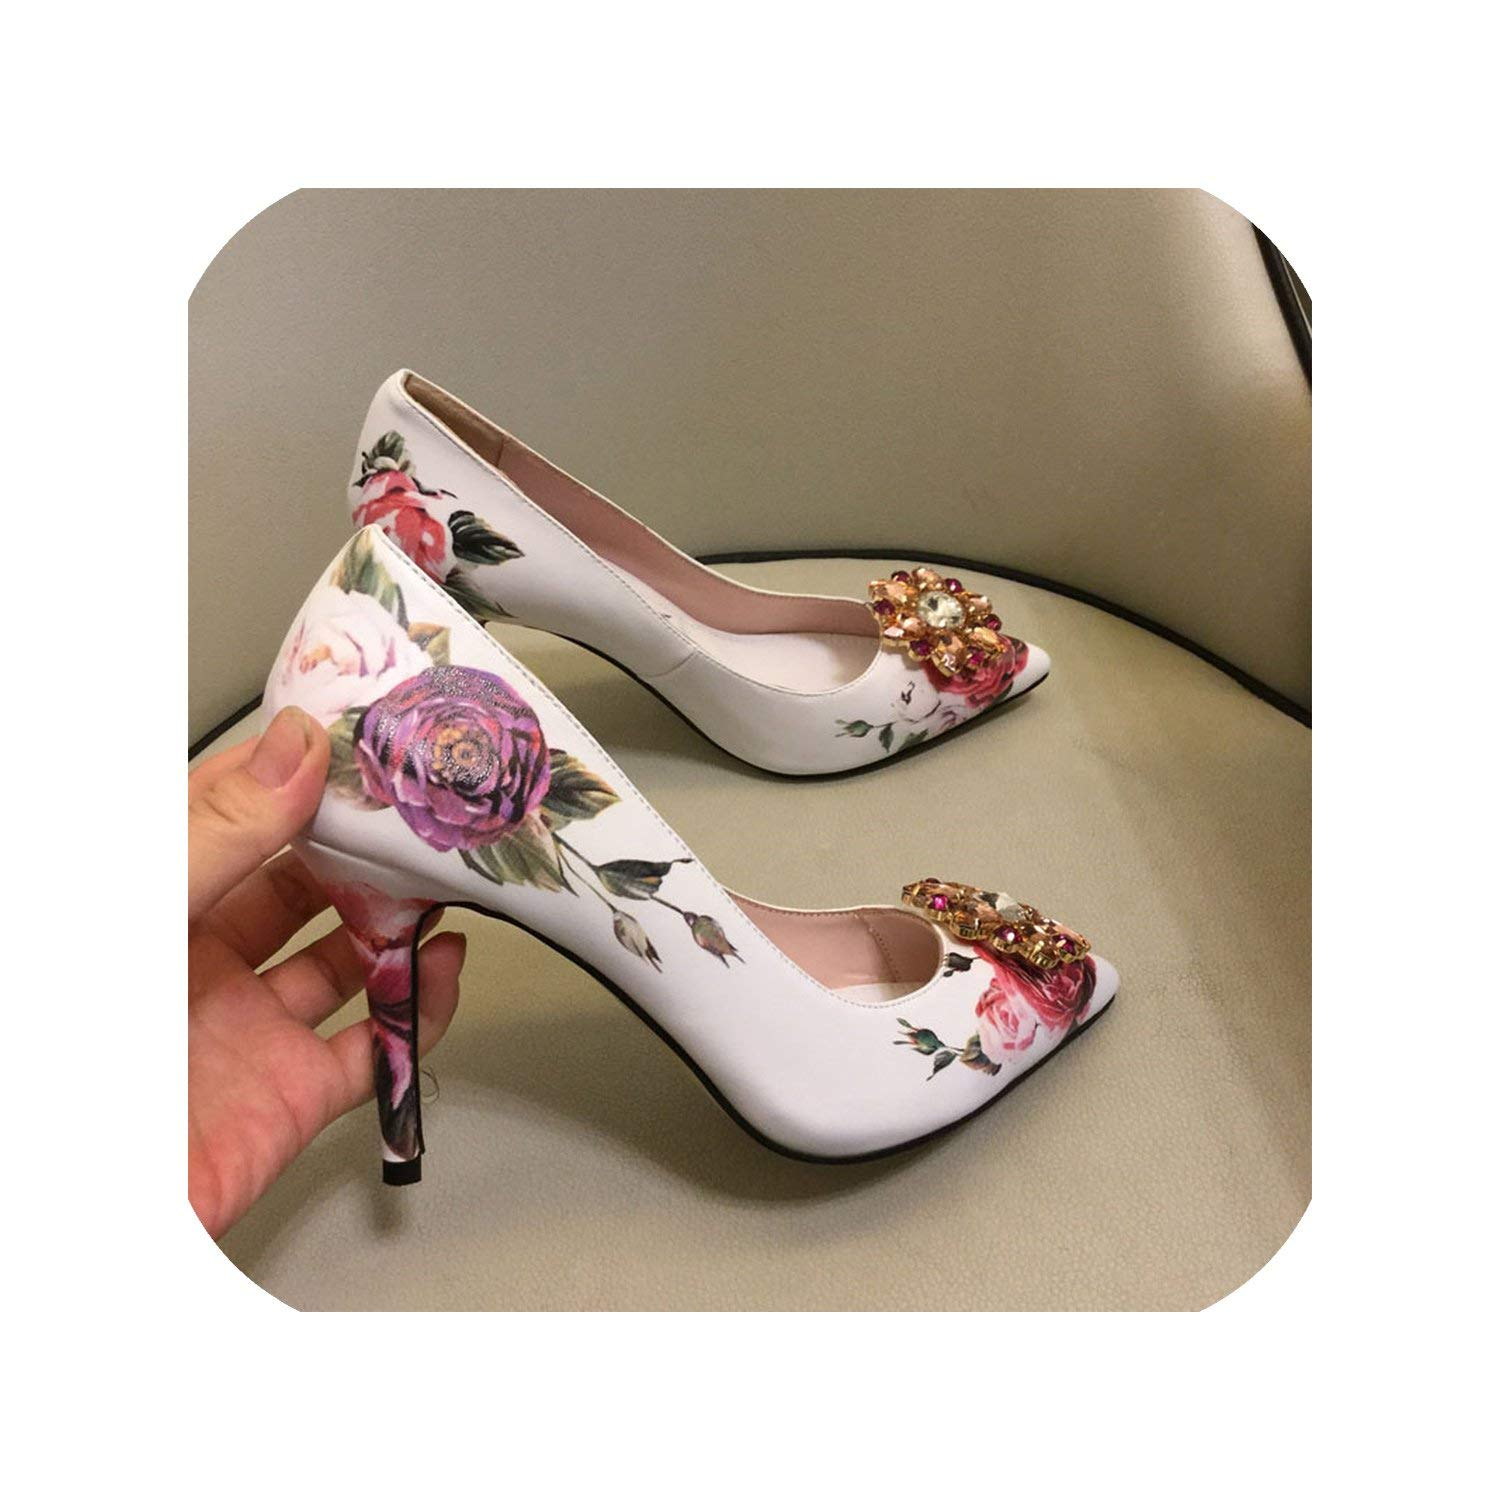 White 10cm The Hot Rock-sandals Printed color High Heel shoes Woman Point Toe Shallow Thin Heel Bling Crystal Wedding shoes Women